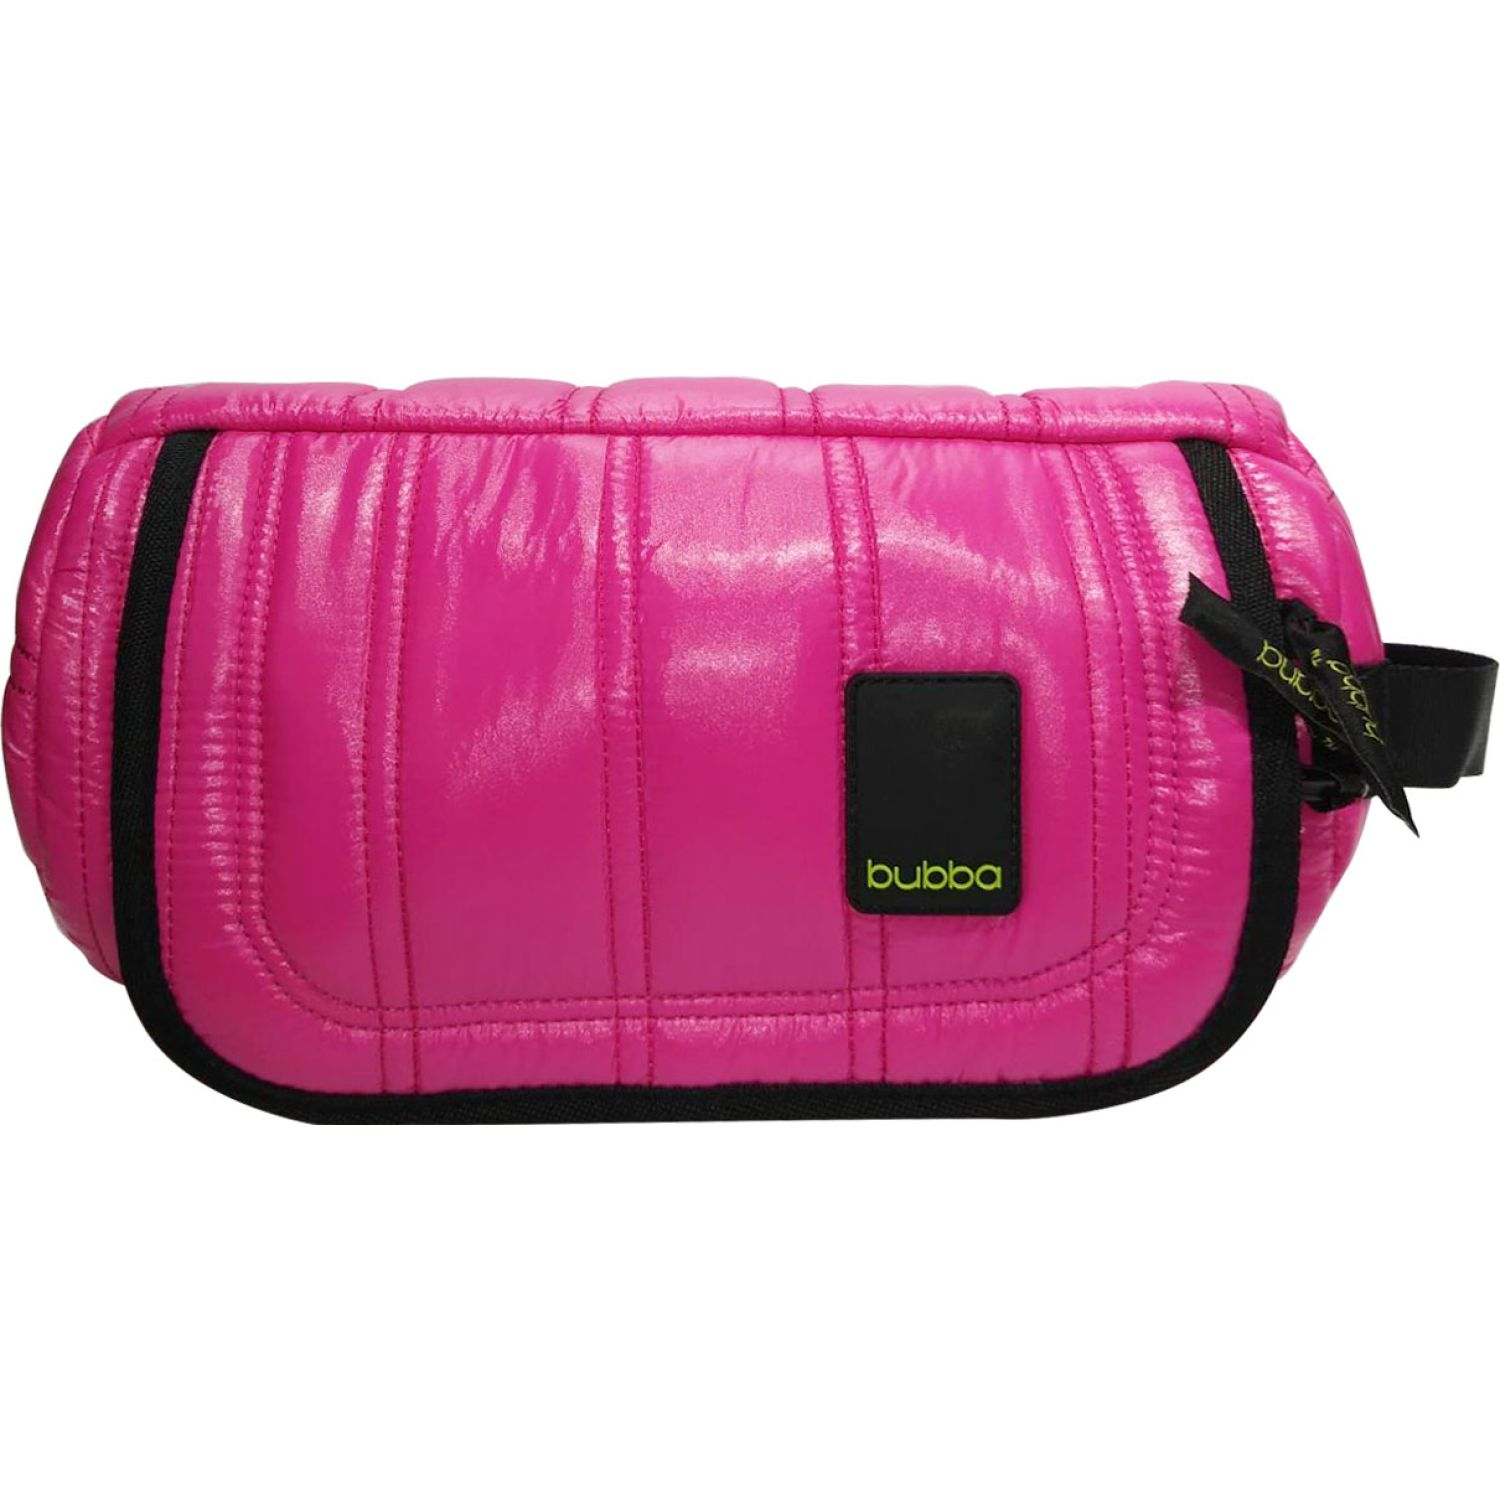 BUBBA BAGS Carry Bag Classic Rosado Cosmetiqueras